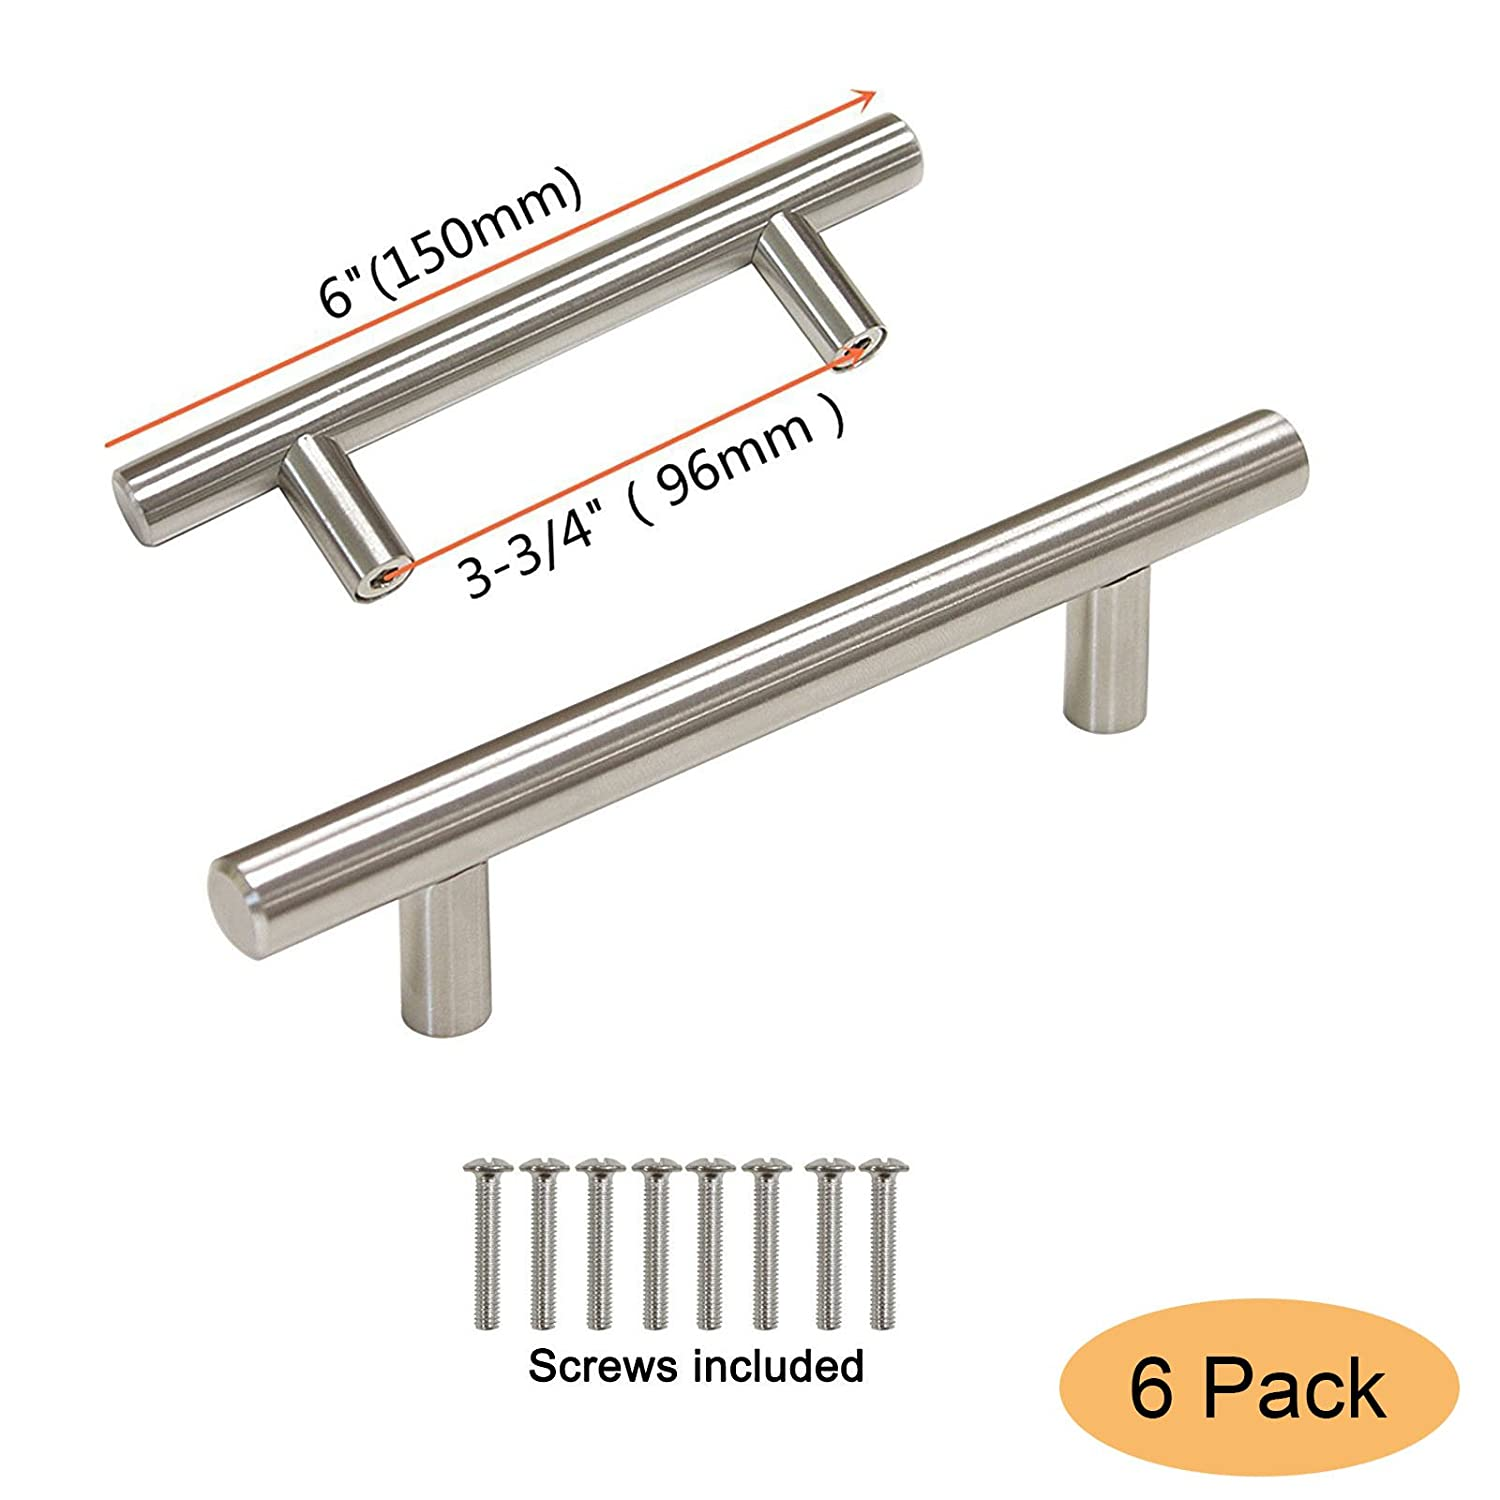 "Gobrico Kitchen Cabinet Handles Stainless Steel for Modern Drawer Dresser Pull Hole Center:96mm(3-3/4""),6 Pack"